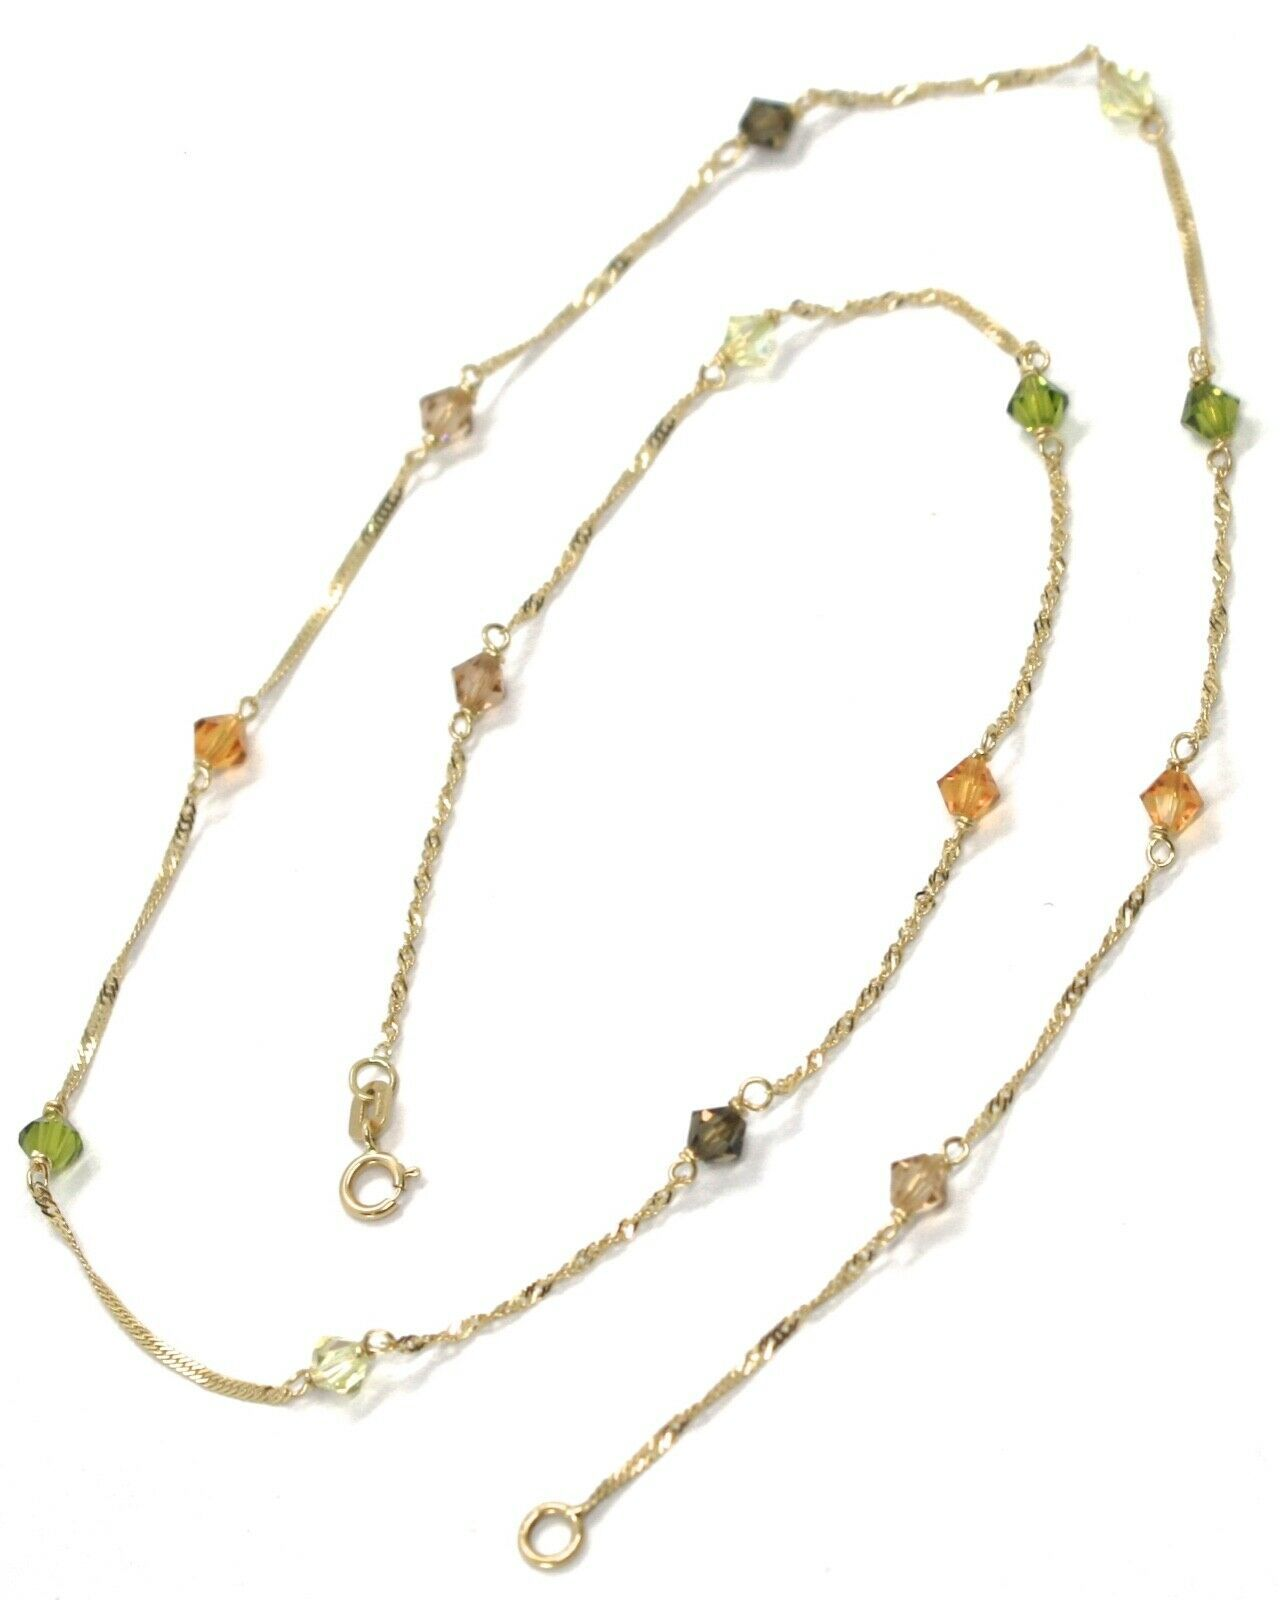 18K YELLOW GOLD NECKLACE, ALTERNATE FACETED MULTI COLOR CRYSTALS SINGAPORE CHAIN